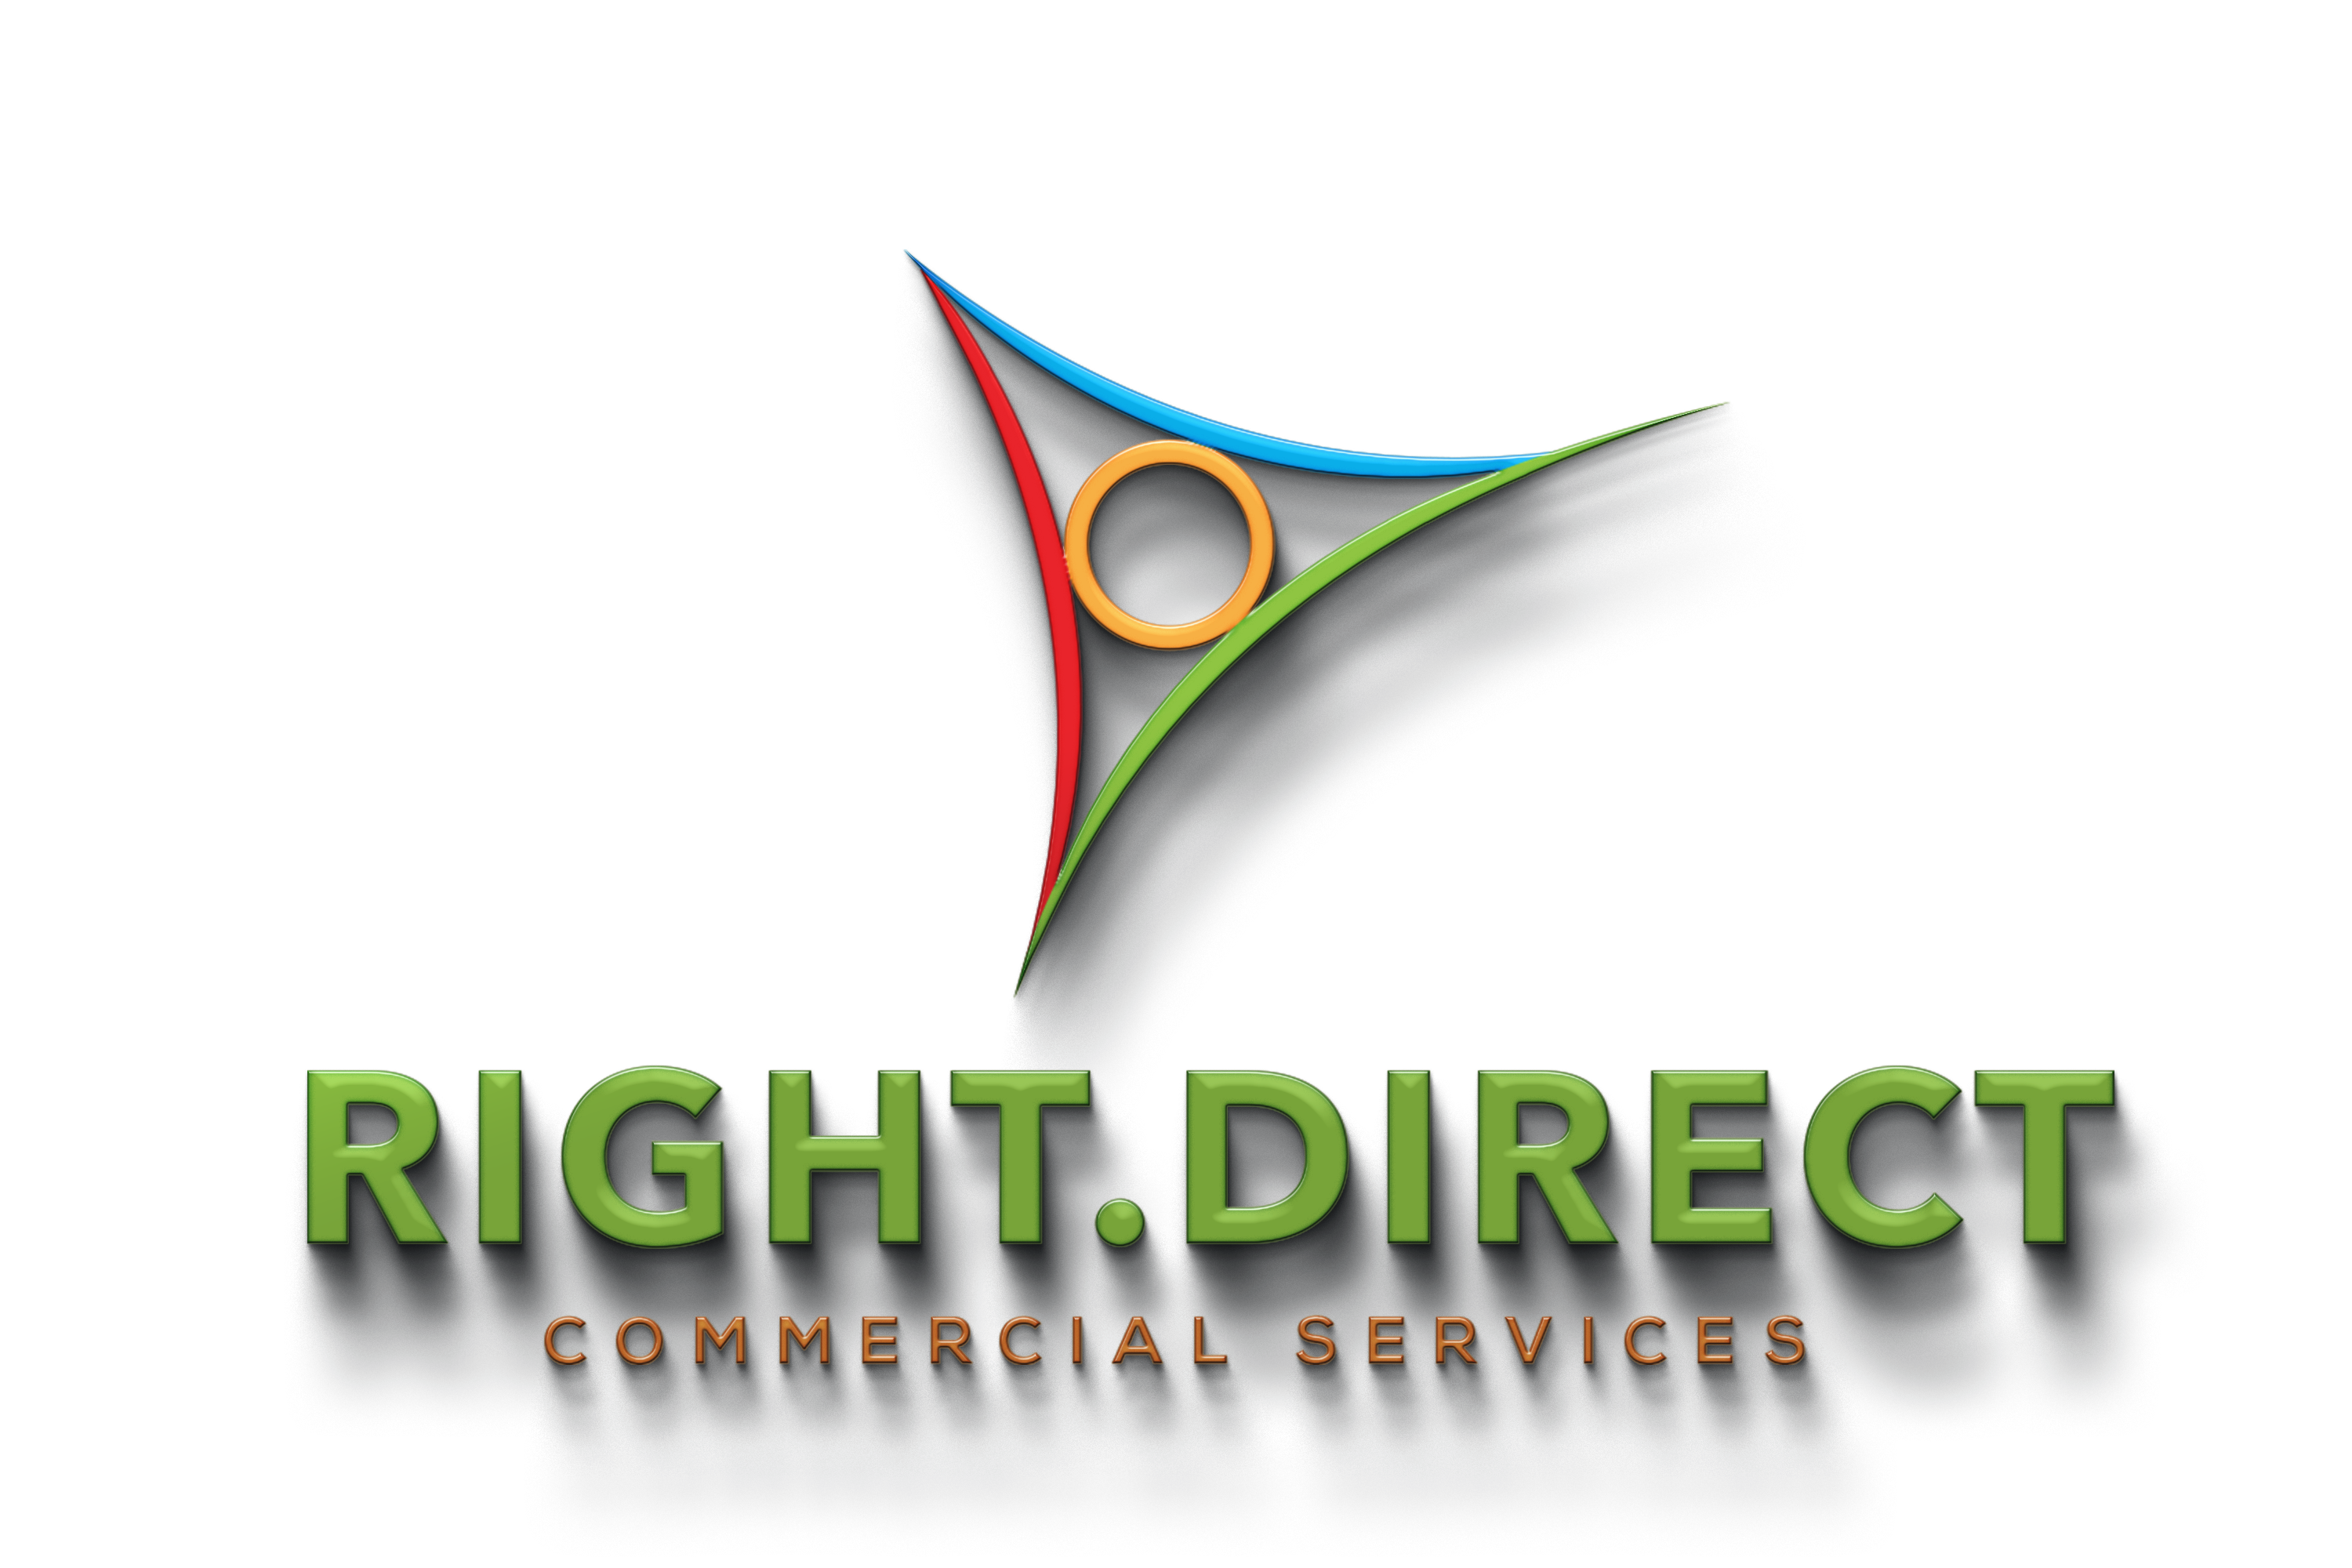 Right. Direct Corp